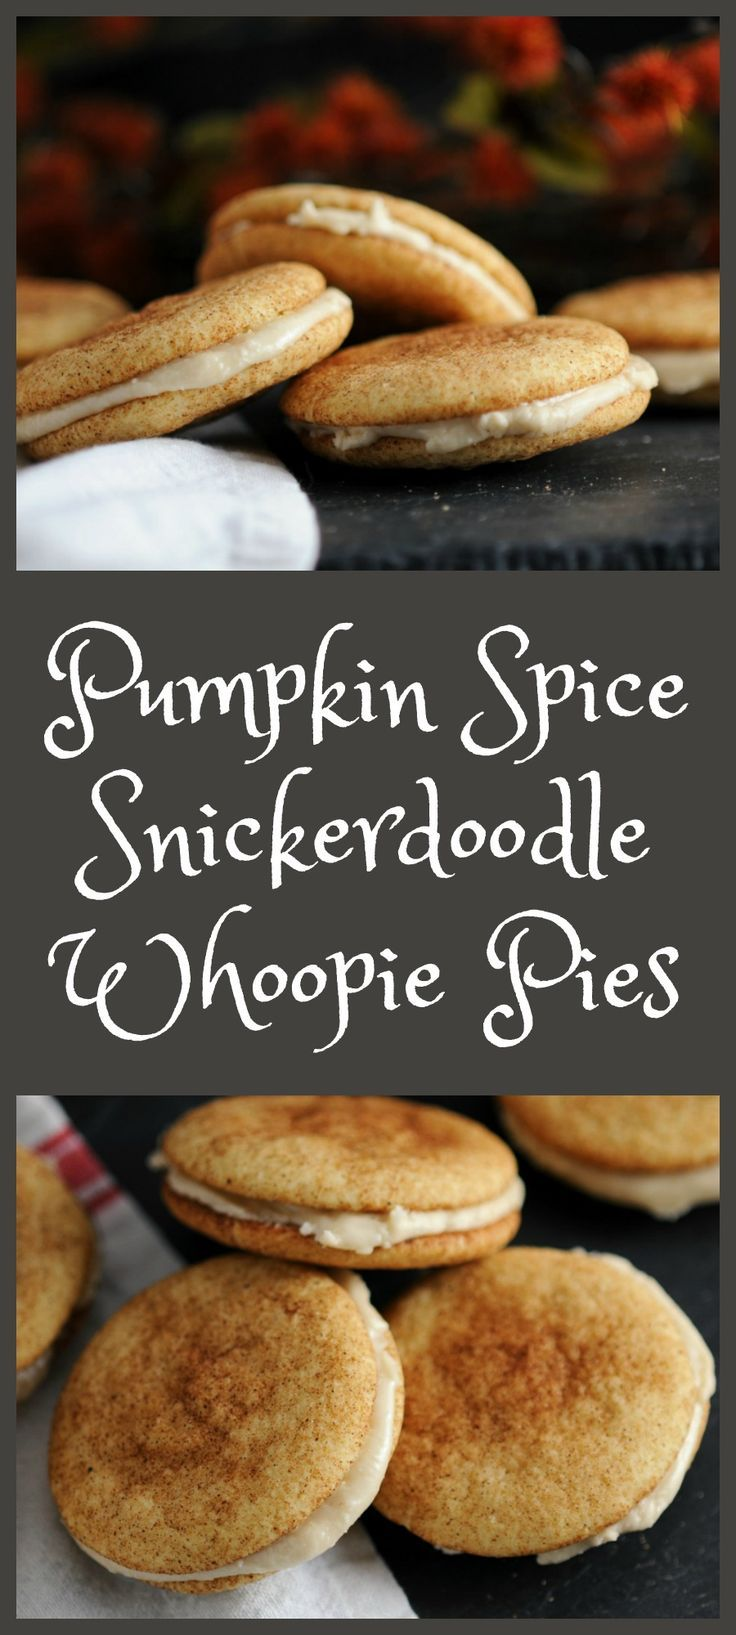 Pumpkin Spice Snickerdoodle Whoopie Pies - Amaretto Cream filling, or with almond extract Cookies, blondies, cake, recipe, dessert, easy